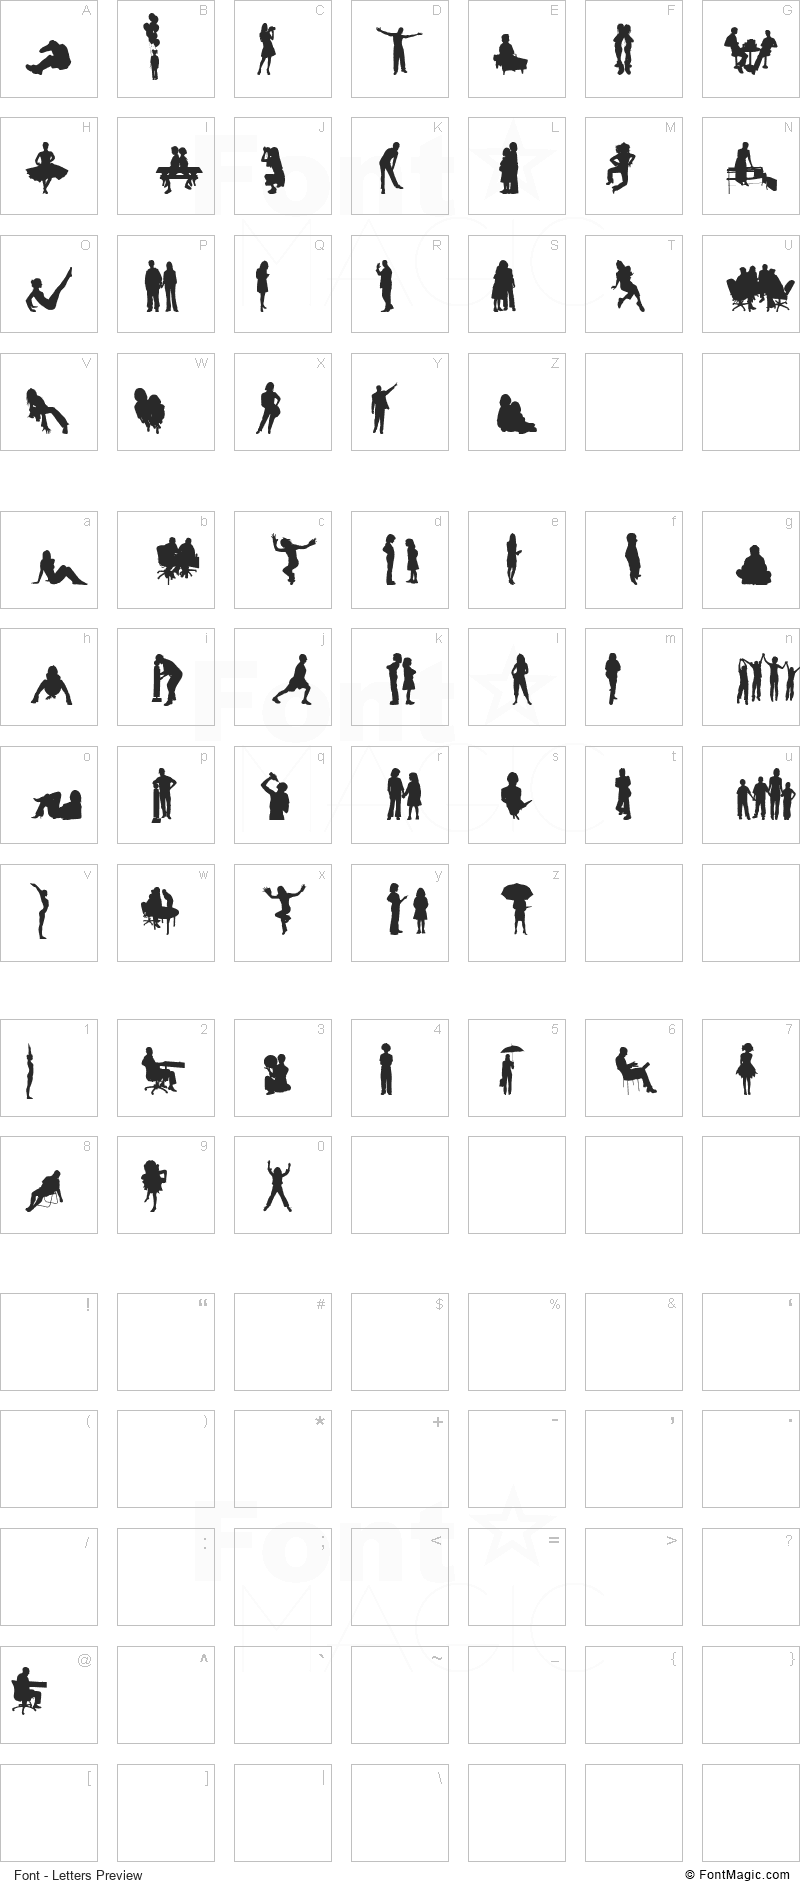 Human Silhouettes Free Four Font - All Latters Preview Chart